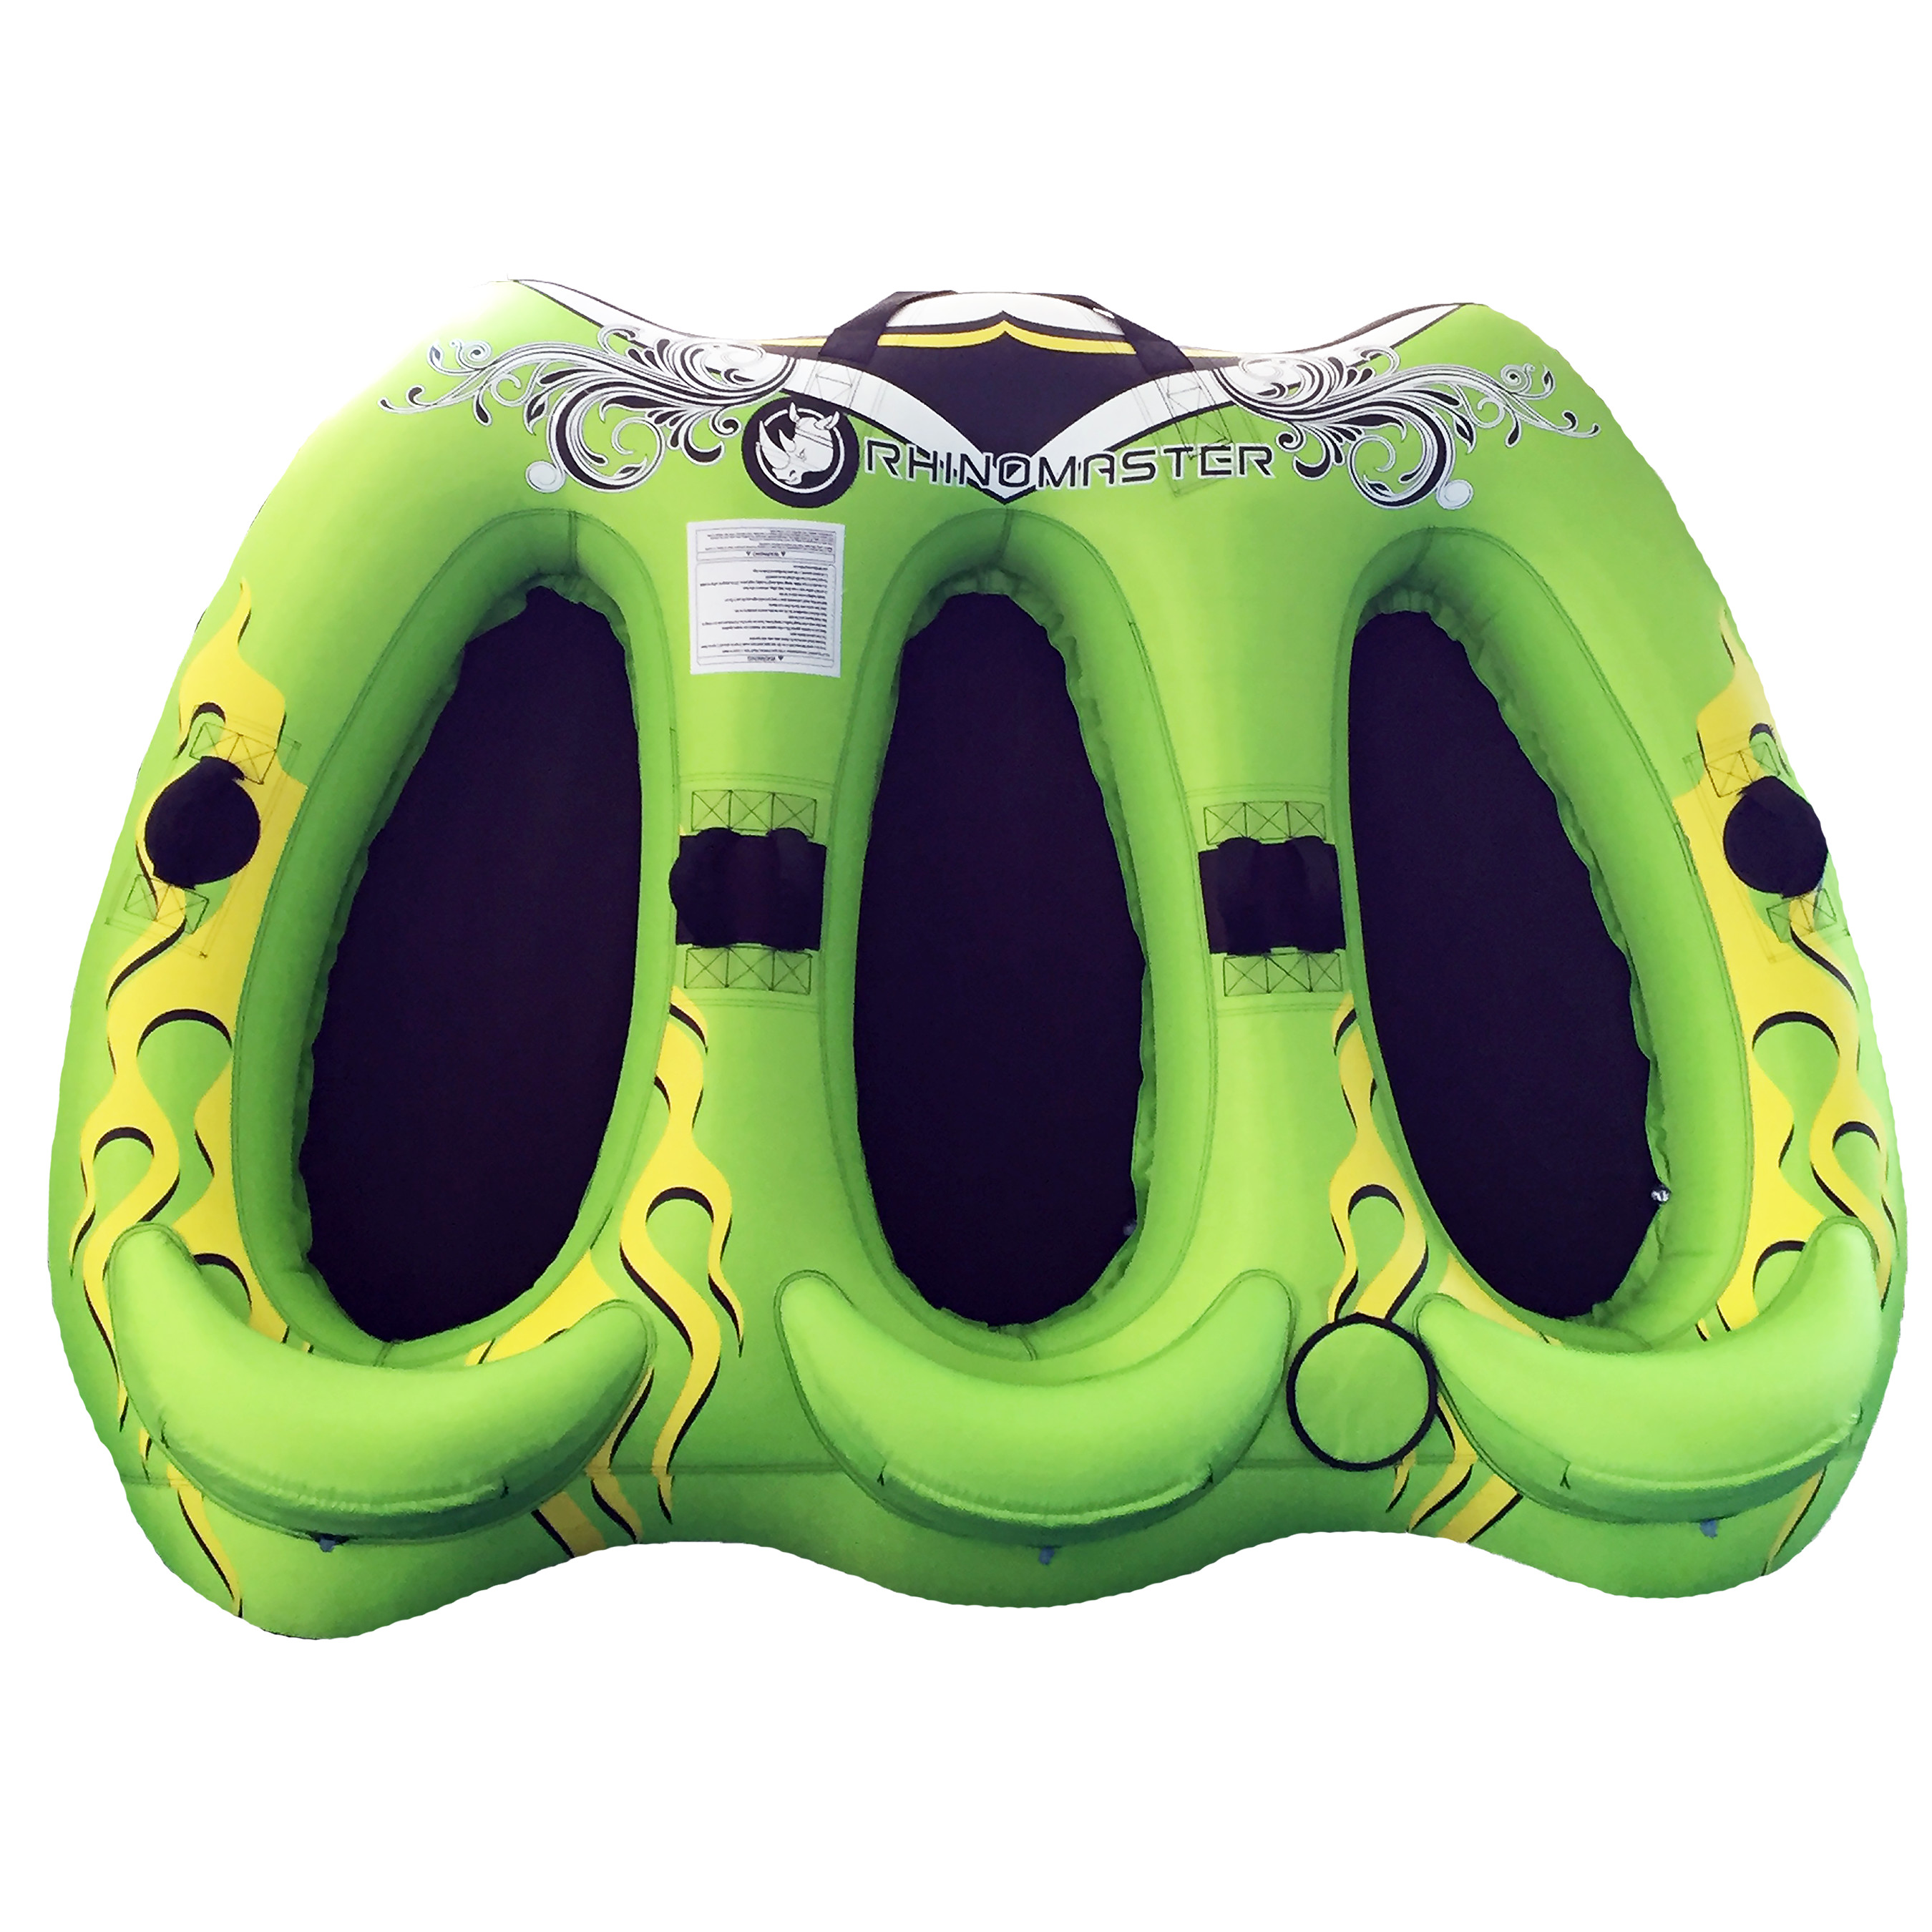 RhinoMaster Tough Viperfish Three - 3-person Inflatable Towable with Rugged Construction for Lake and Ocean Boating